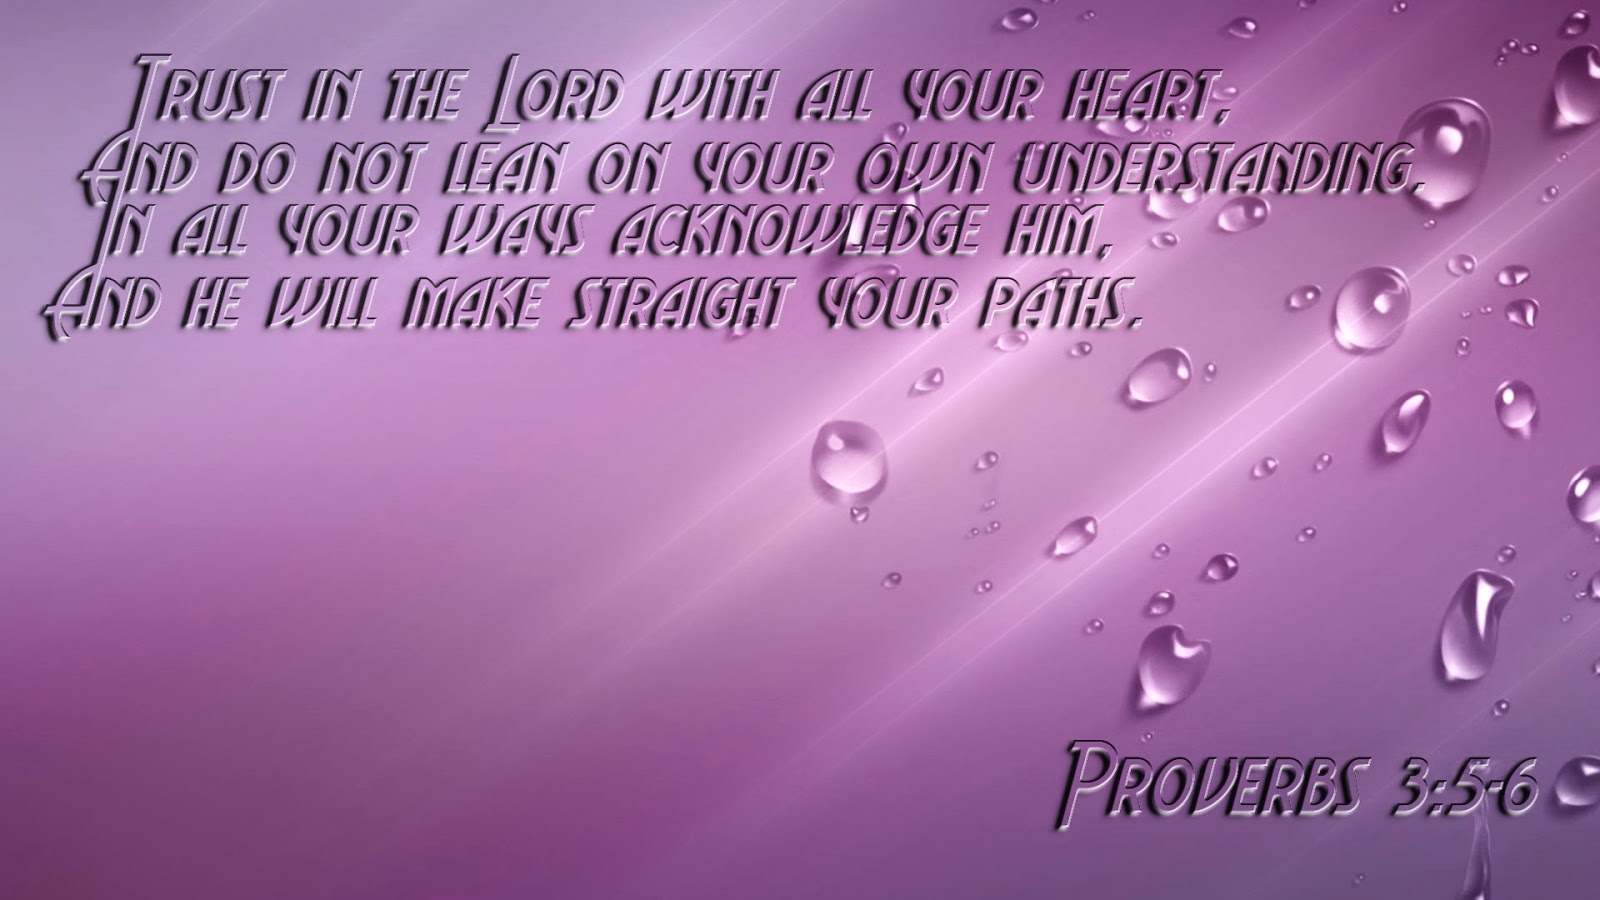 scripture wallpaper proverbs 3 5 6 bible verse wallpaper